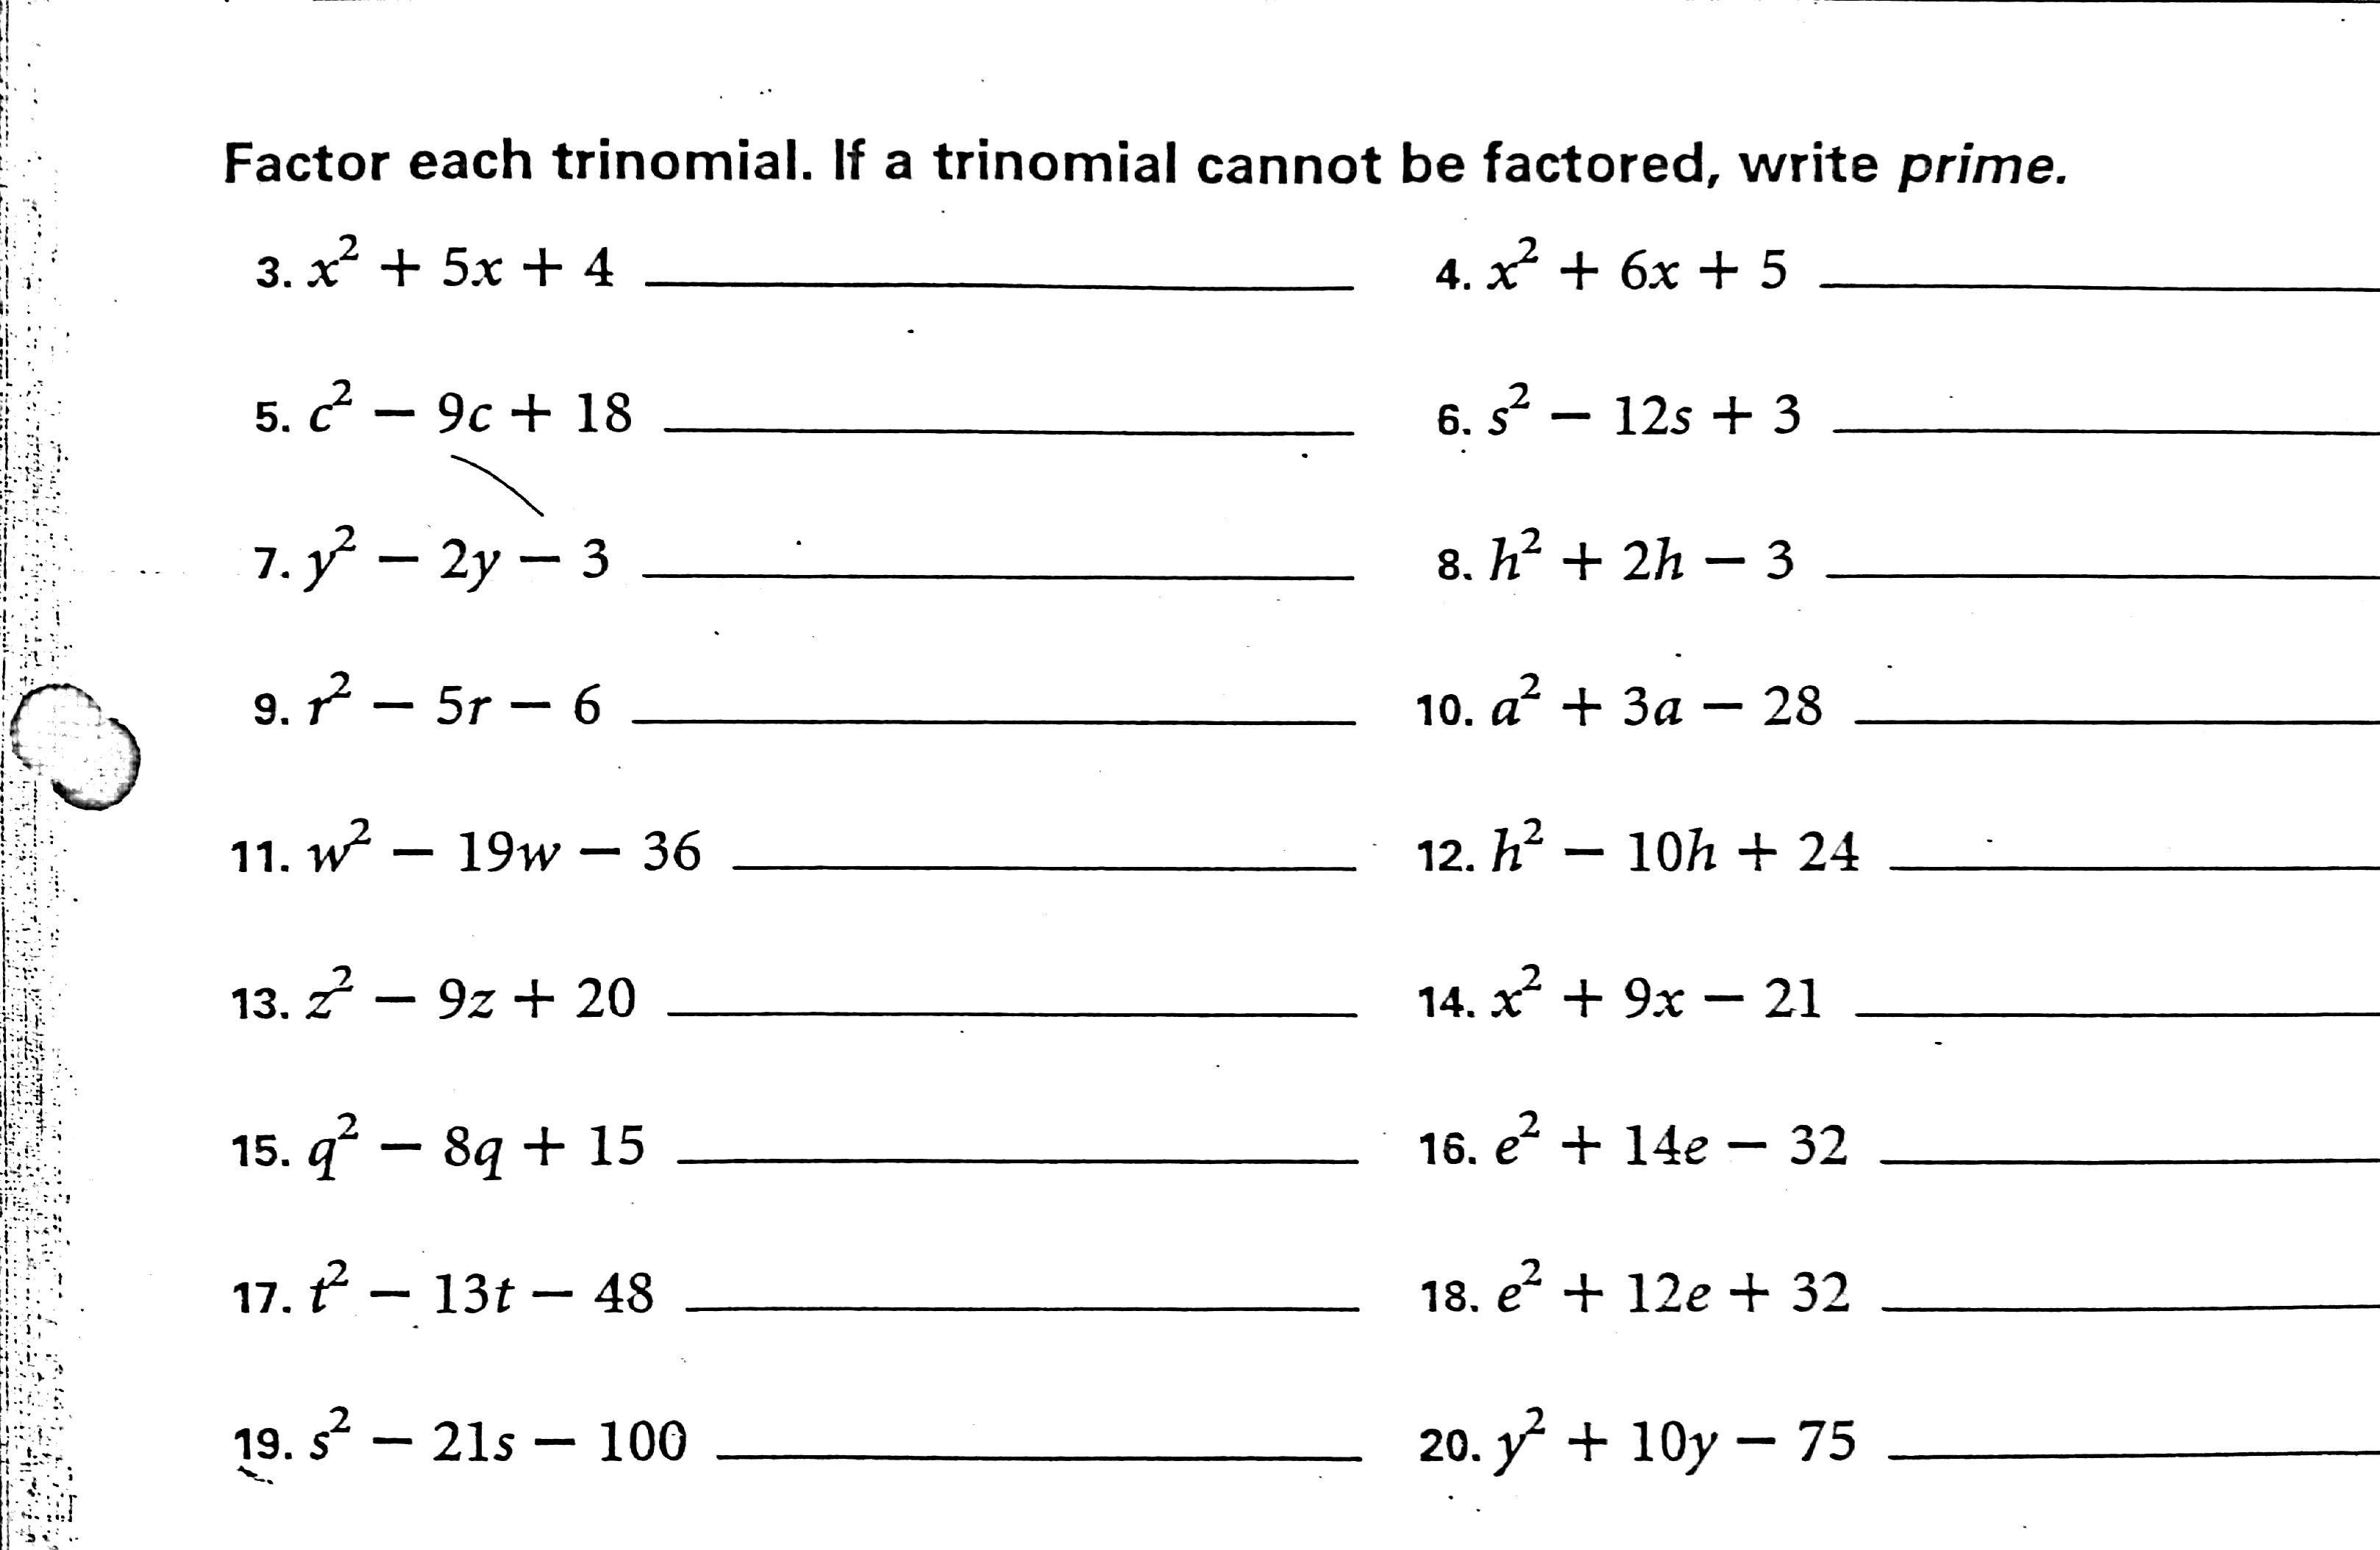 Proatmealus  Marvellous Factoring Worksheet  Delwfgcom With Great Factoring Polynomials Practice Worksheet With Answers Coterraneo With Endearing Operations With Rational Numbers Worksheets Also Worksheet A Earned Income Credit In Addition Grade  Geography Worksheets And Ratio Analysis Worksheet As Well As Drawing Conclusion Worksheets For Rd Grade Additionally Foundation Worksheets From Delwfgcom With Proatmealus  Great Factoring Worksheet  Delwfgcom With Endearing Factoring Polynomials Practice Worksheet With Answers Coterraneo And Marvellous Operations With Rational Numbers Worksheets Also Worksheet A Earned Income Credit In Addition Grade  Geography Worksheets From Delwfgcom